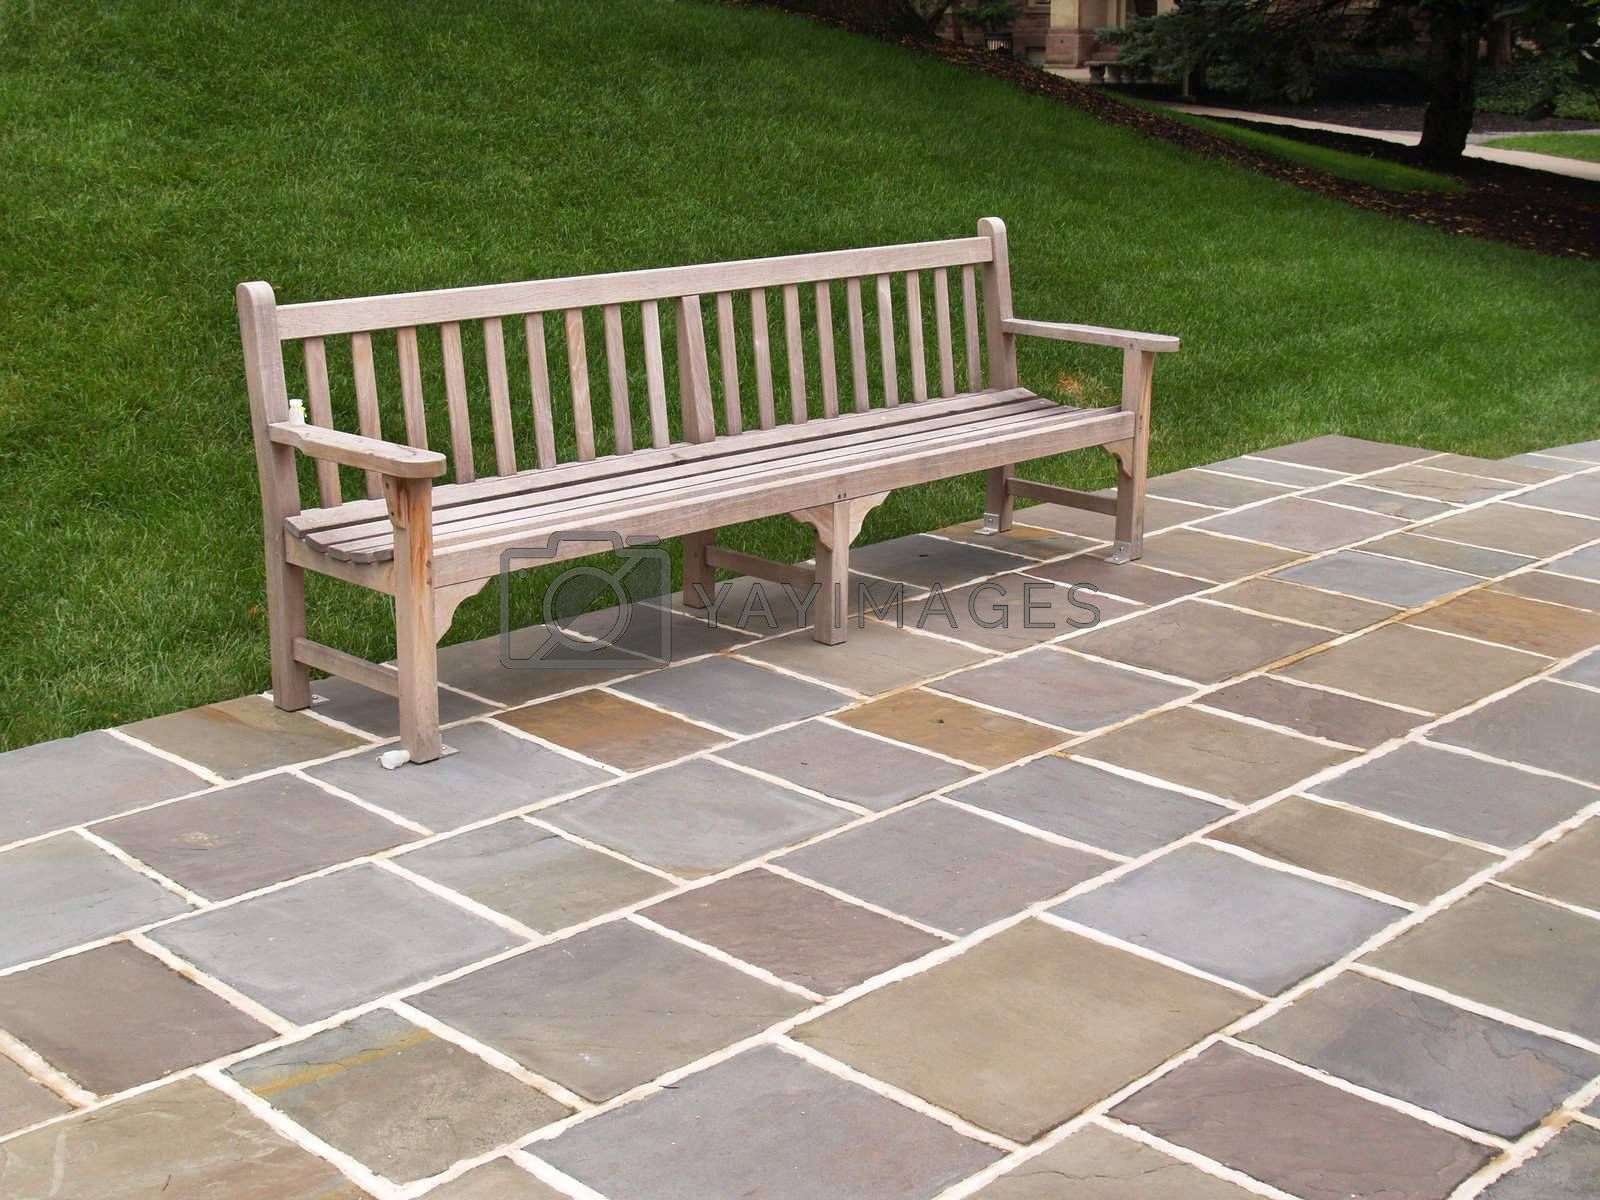 one empty wood bench by a stone patio